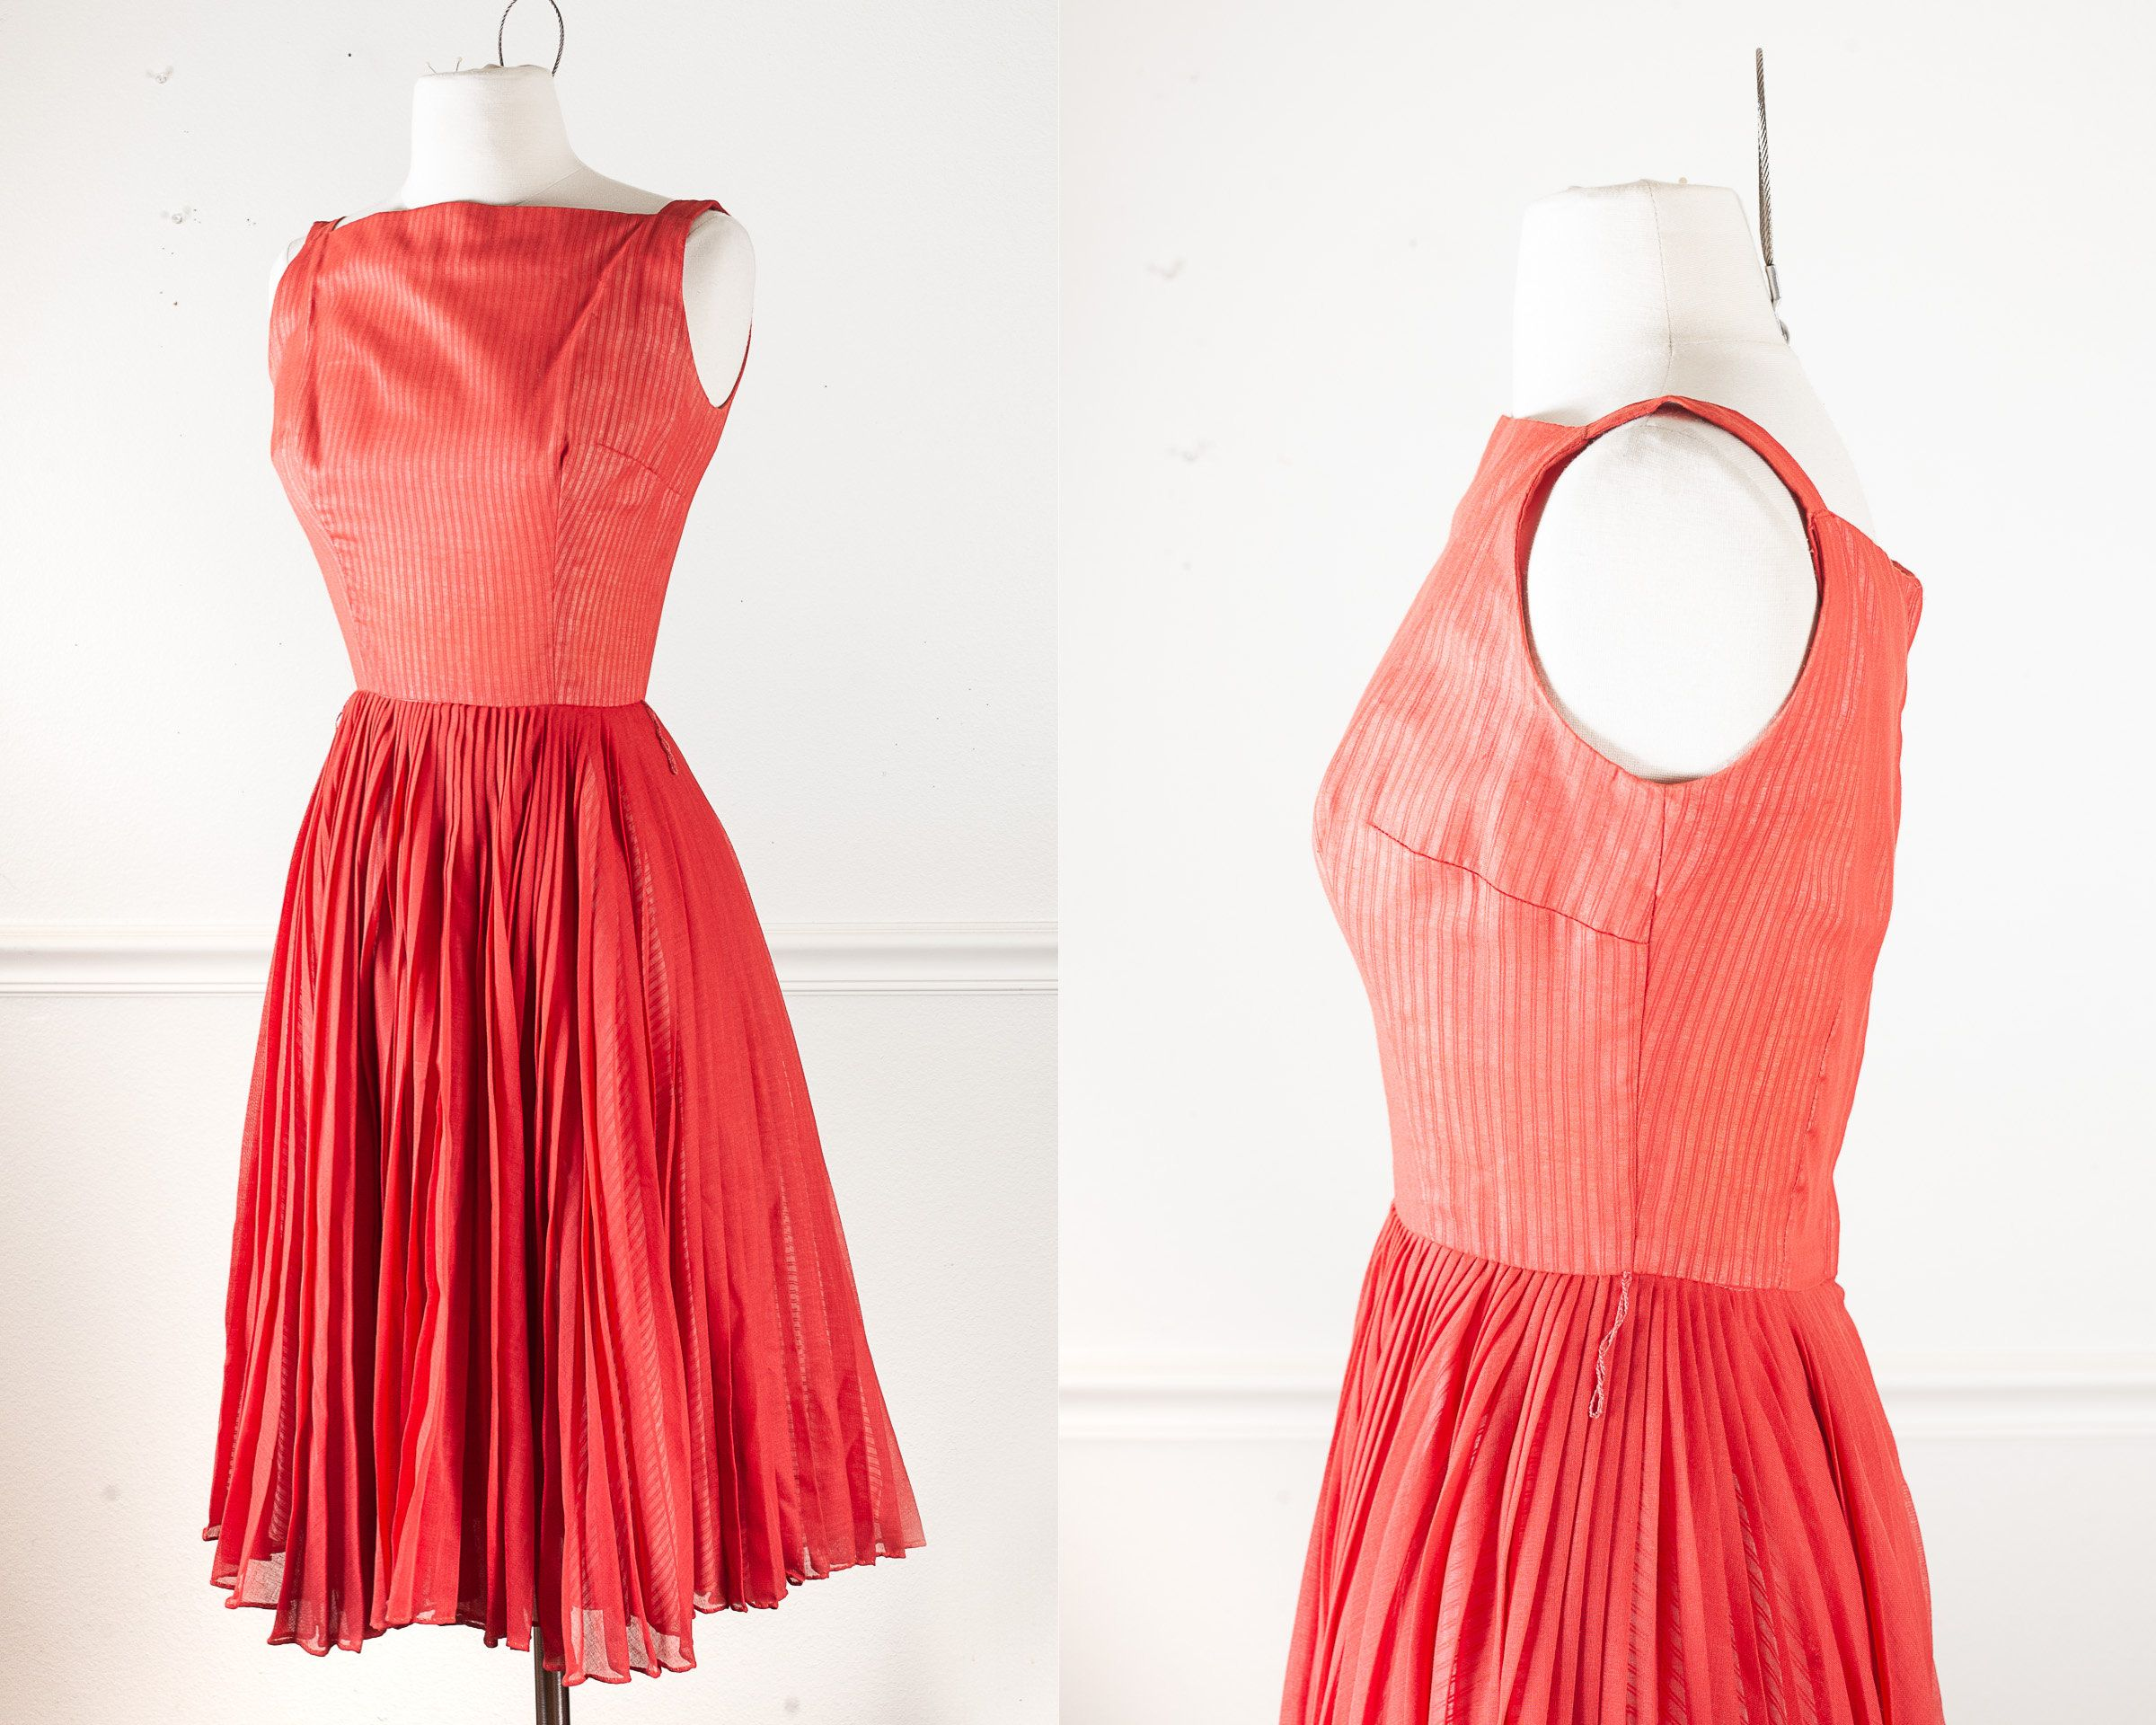 50s 60s Dress Vintage Retro Fashion Vintage 60s Anne Fogerty Pleated Fit And Flare Red Cotton Su Flared Skirt Dress Vintage Dresses Cotton Stripe Dresses [ 1920 x 2400 Pixel ]